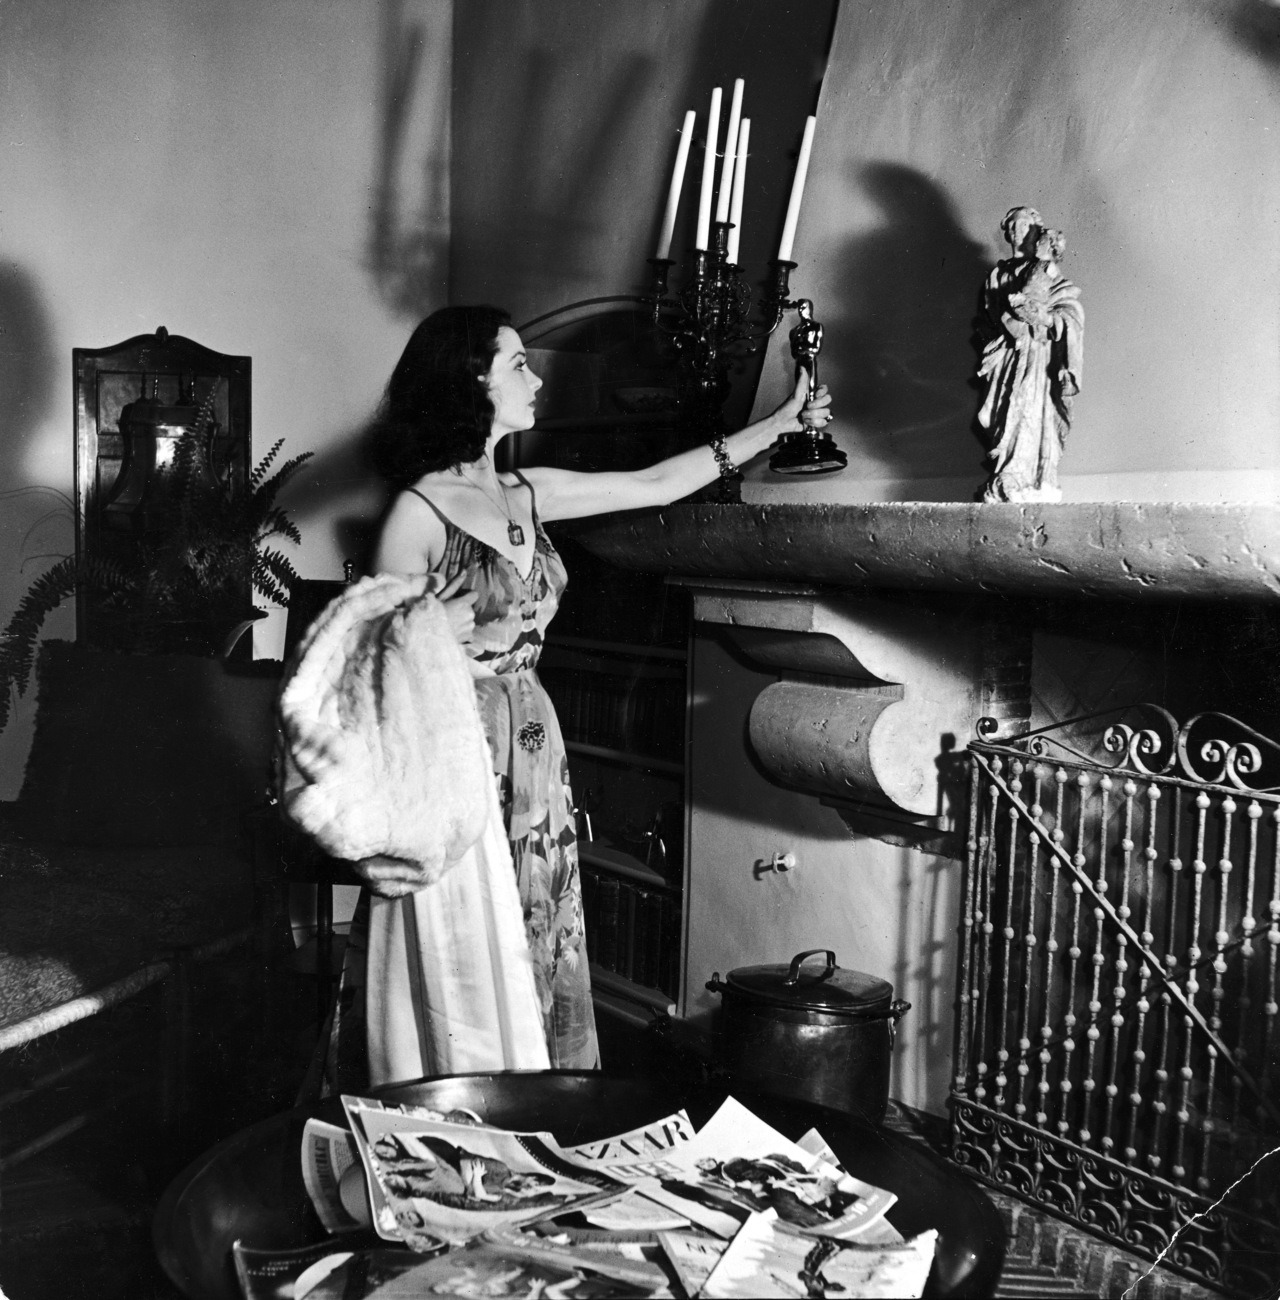 Vivien Leigh placing her Best Actress Academy Award on her mantel the morning after the Oscars.  She won for her role as Scarlett O'Hara in Gone with the Wind in 1940, the first year the ceremony was televised.